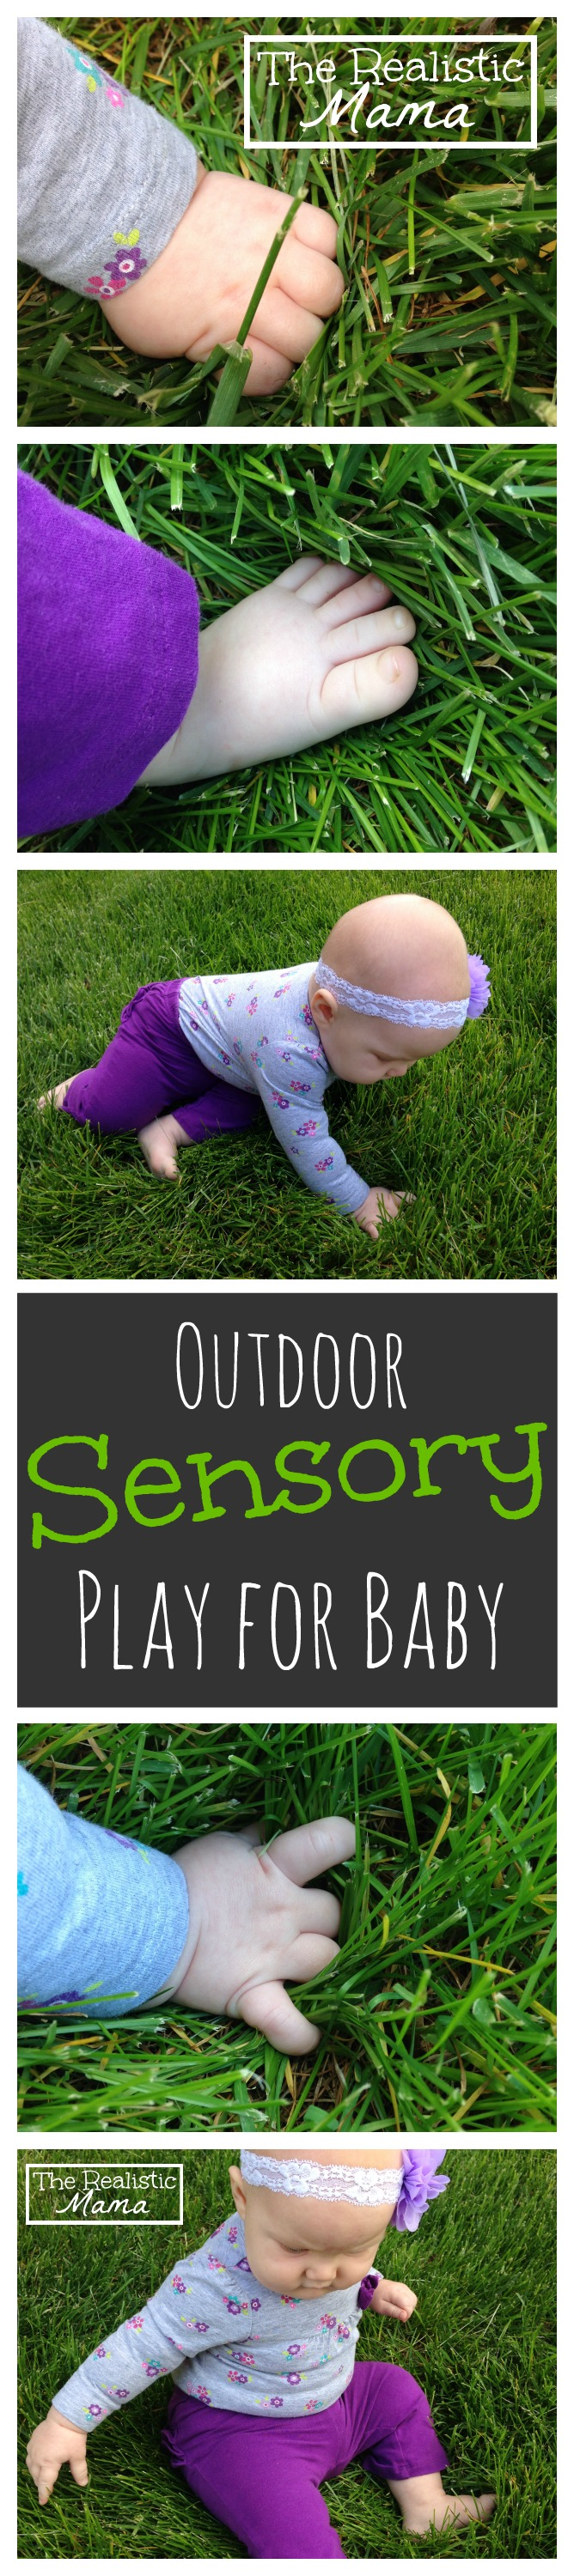 Easy Outdoor Sensory Play for Baby